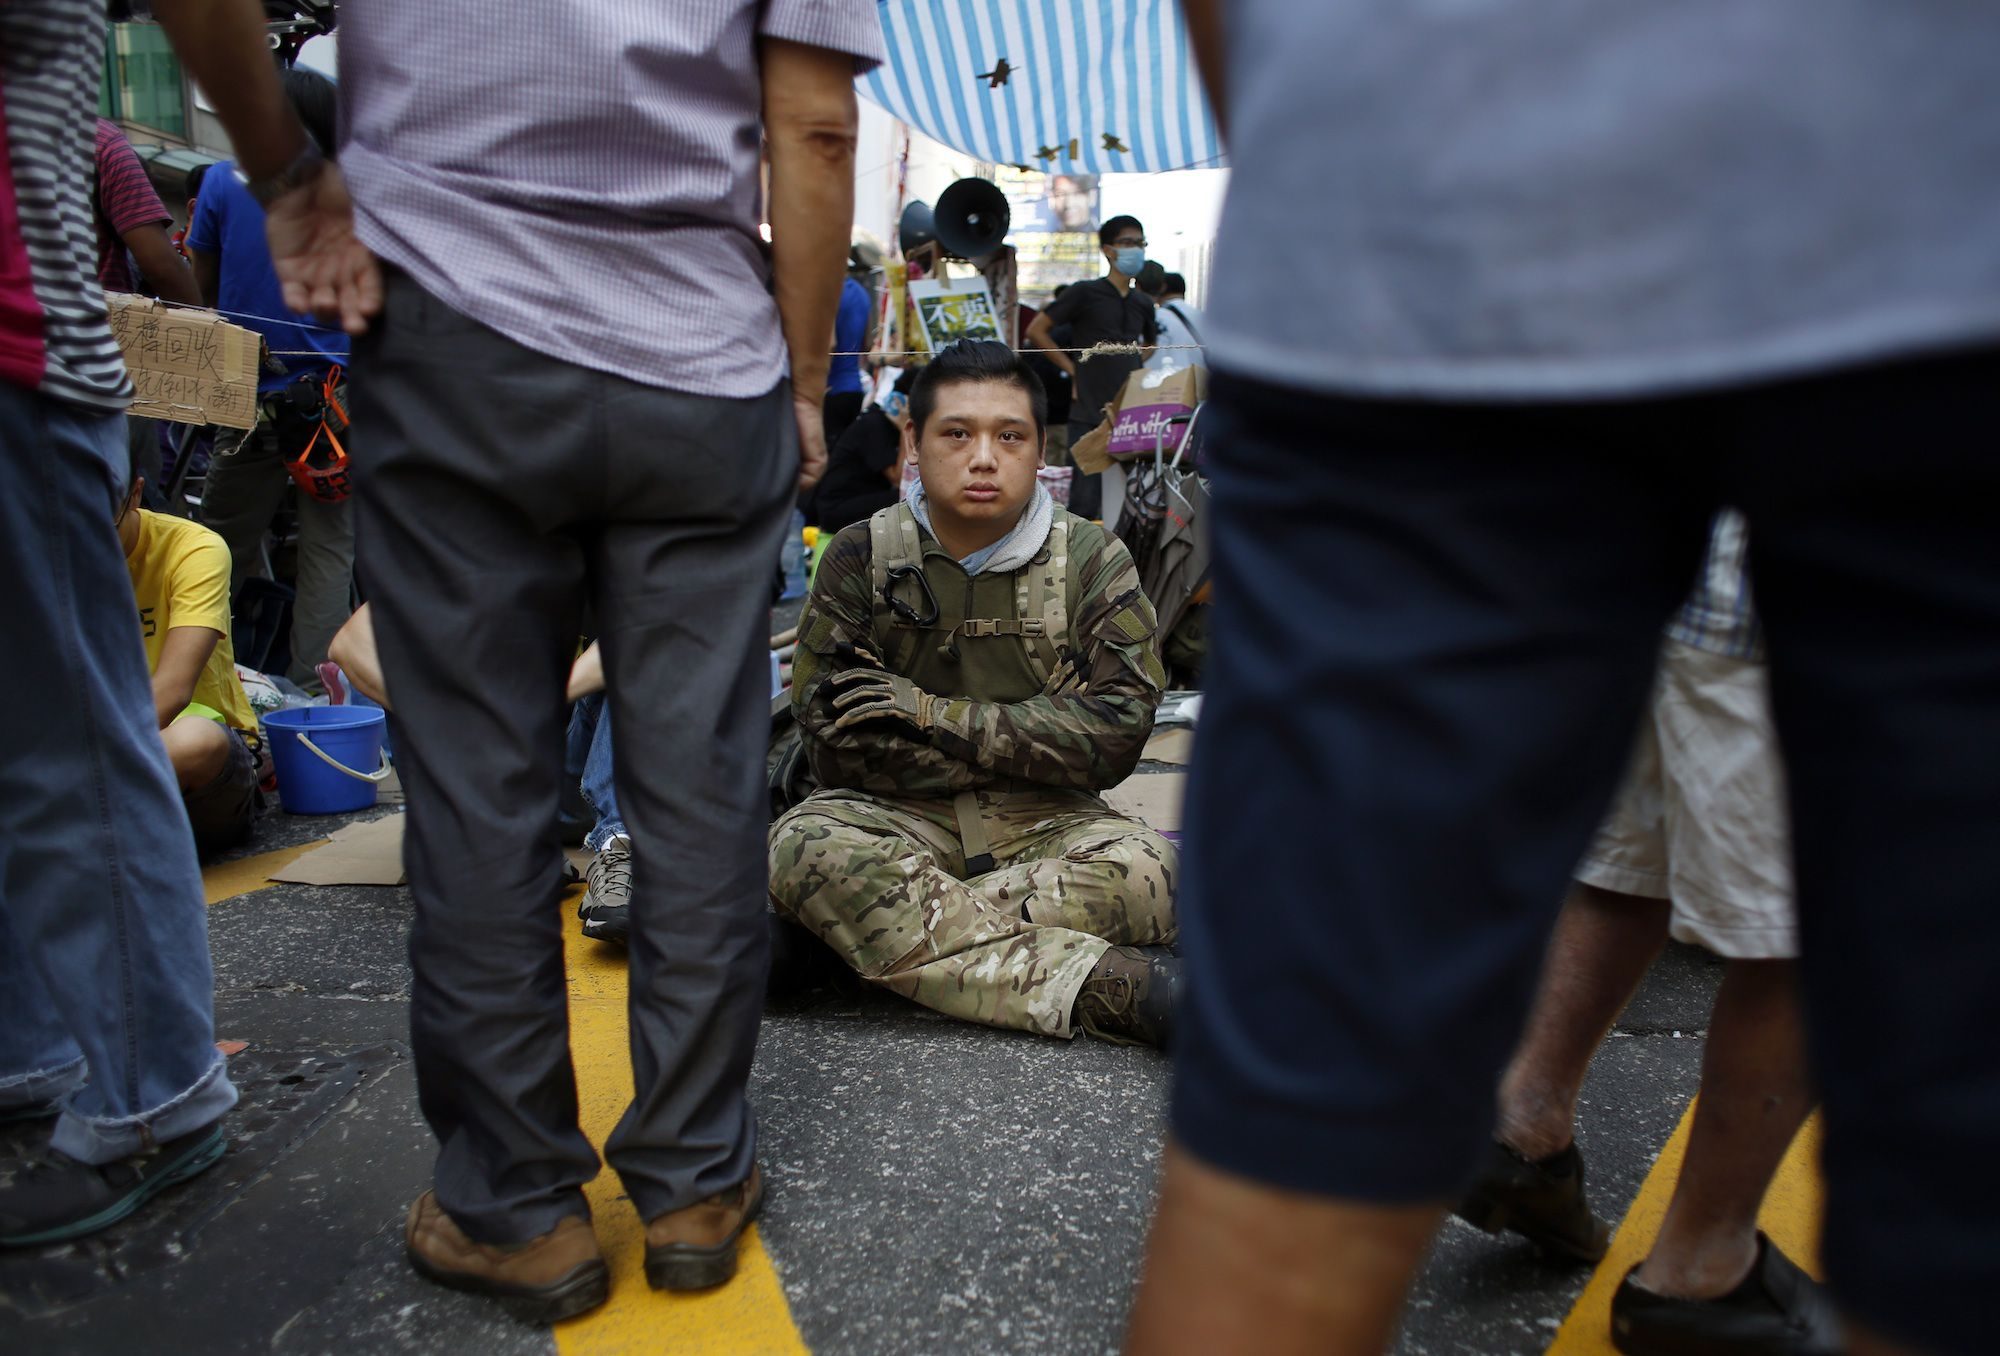 A pro-democracy protester guards a tent from possible attack by anti- protesters in Mong Kok on Oct. 5.